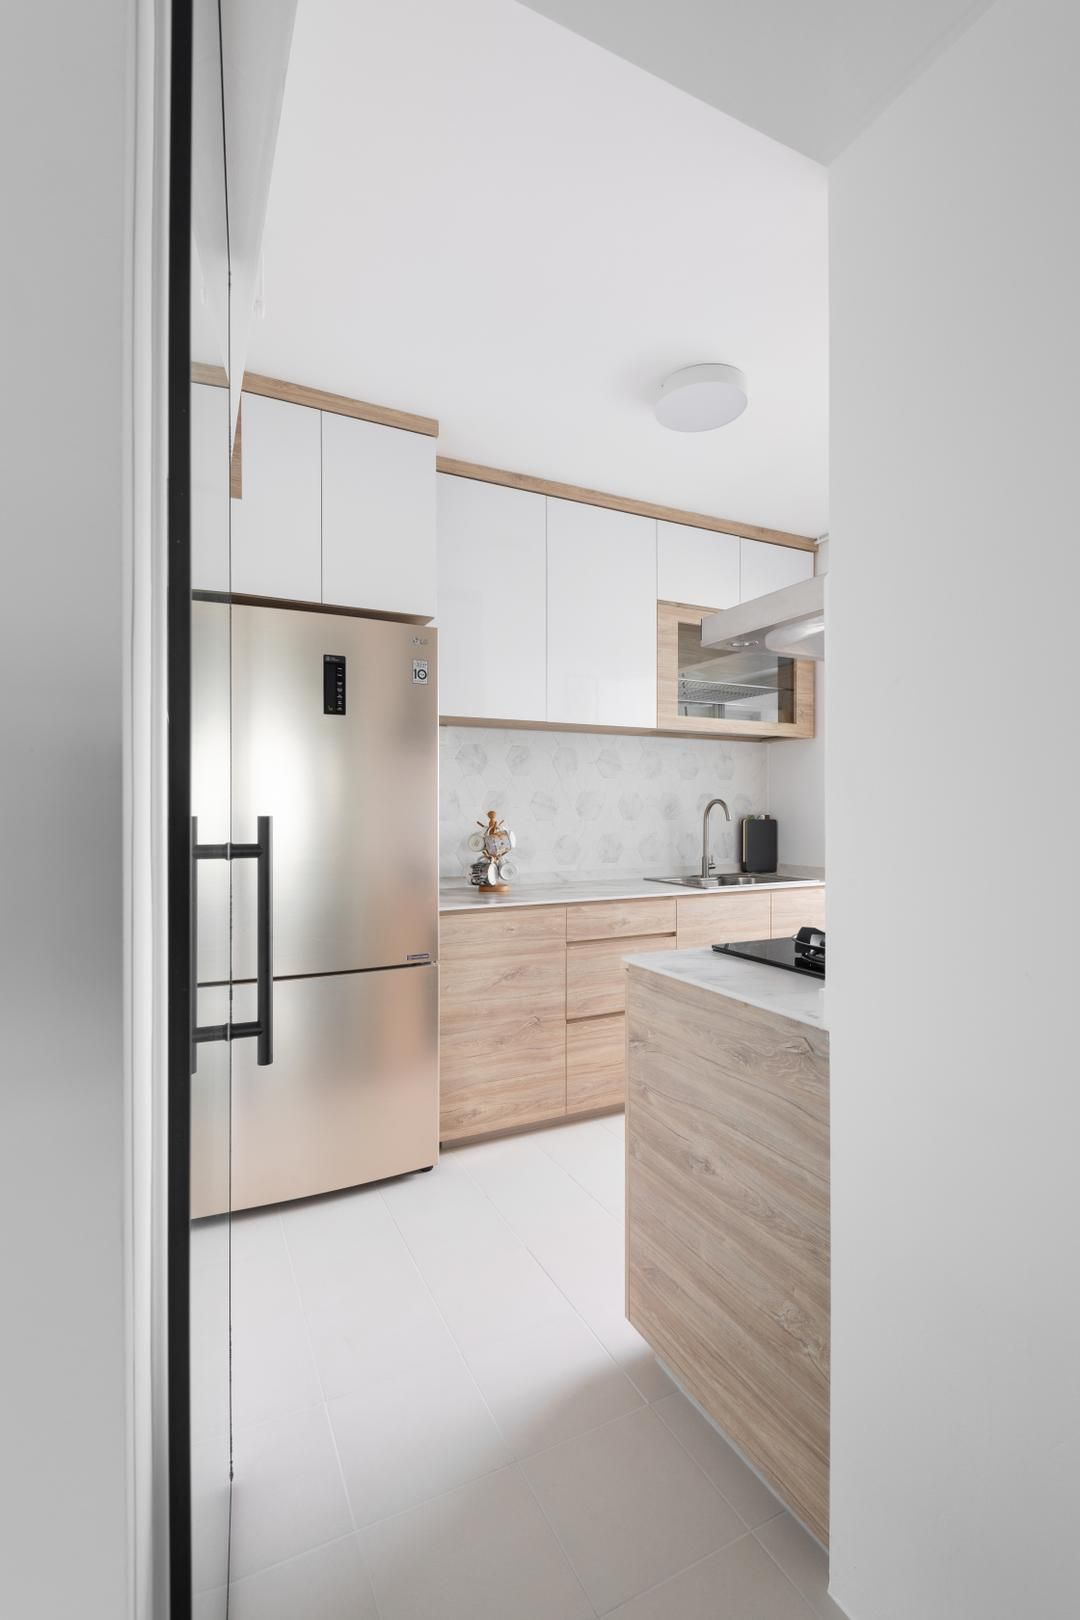 Check Out This Scandinavian Style Hdb Kitchen And Other Similar